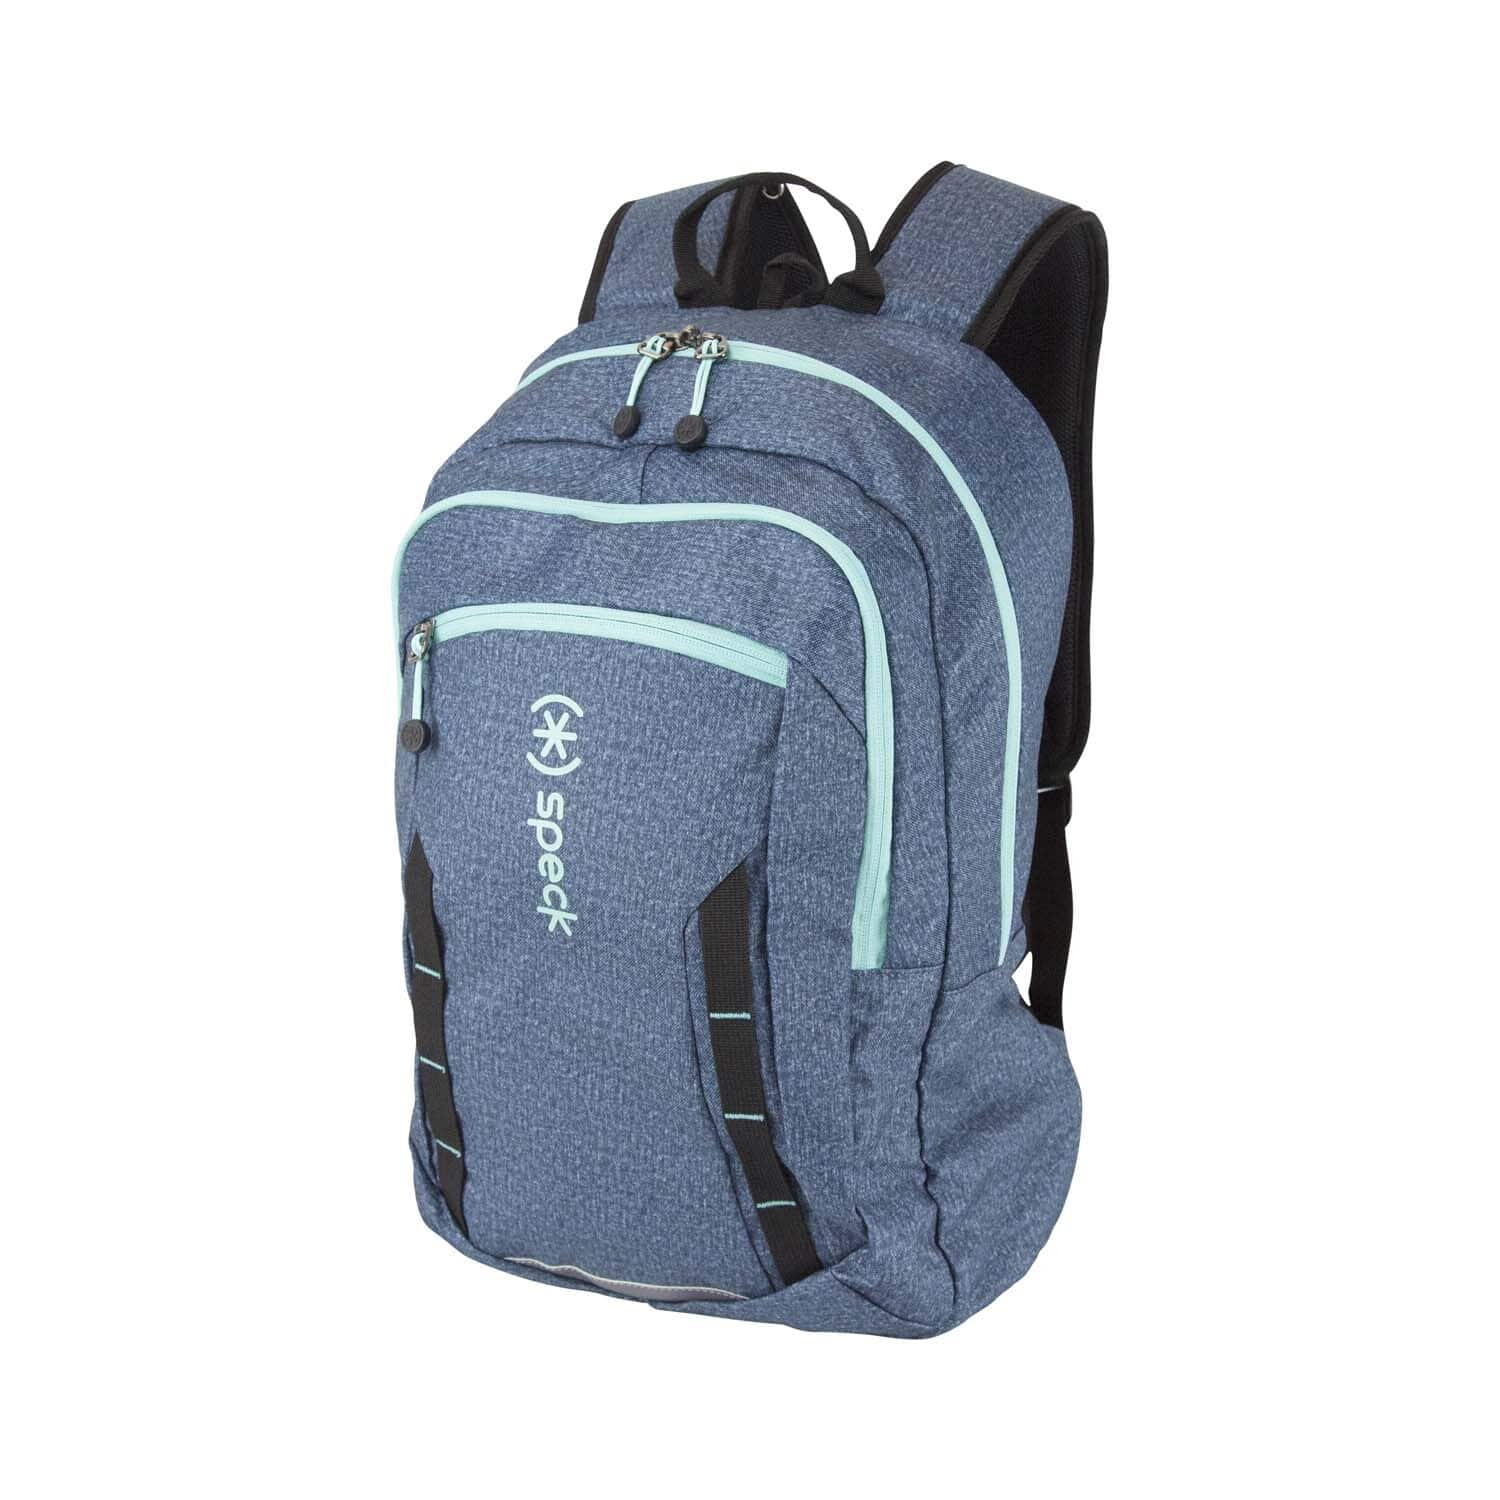 Speck Backpacks Back - Prep Backpack $14.97